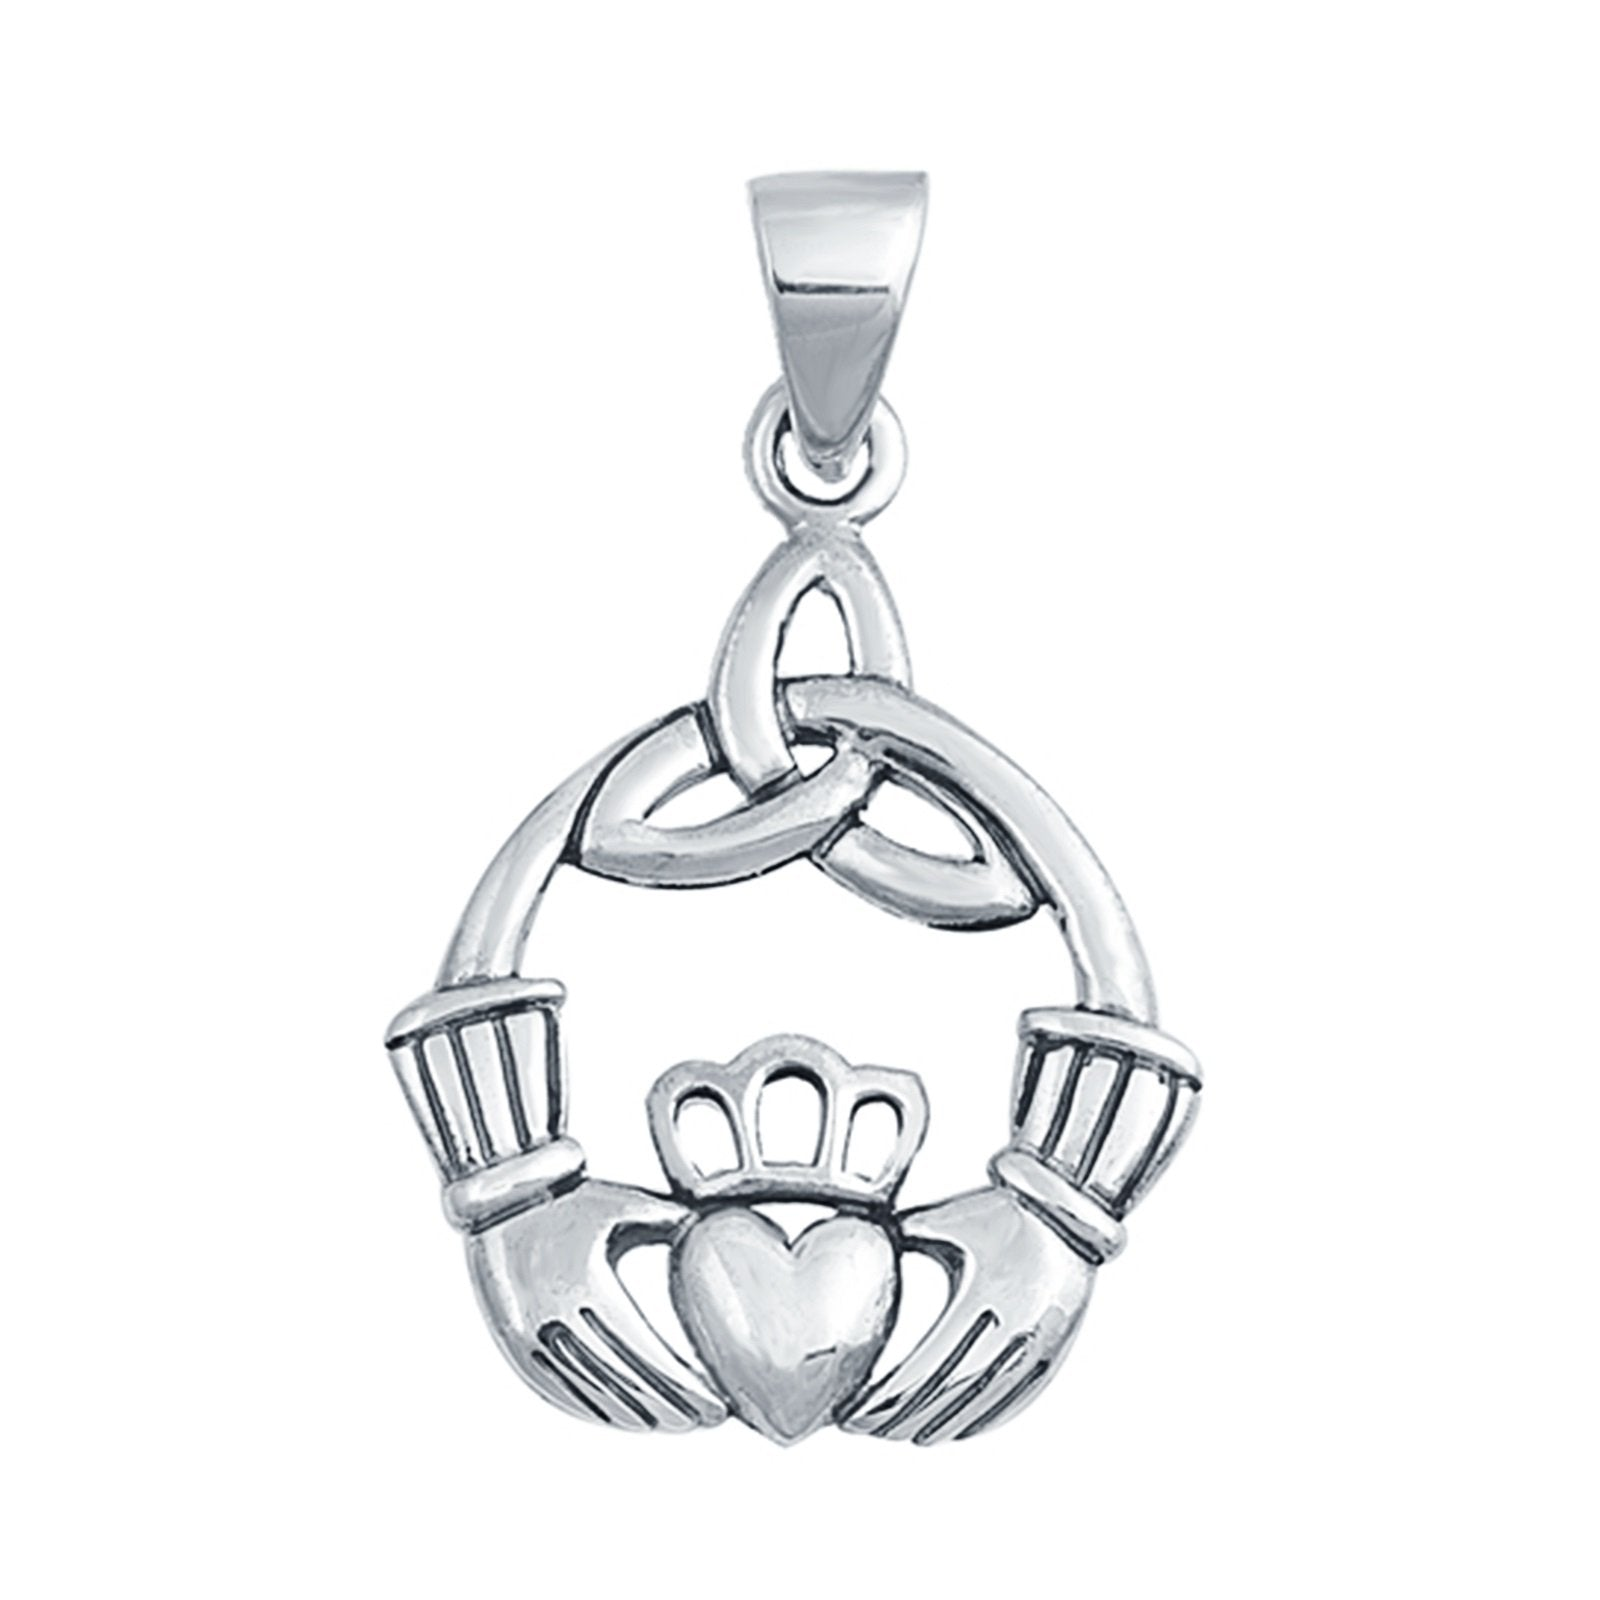 Celtic Claddagh Pendant Charm 925 Sterling Silver Fashion Jewelry